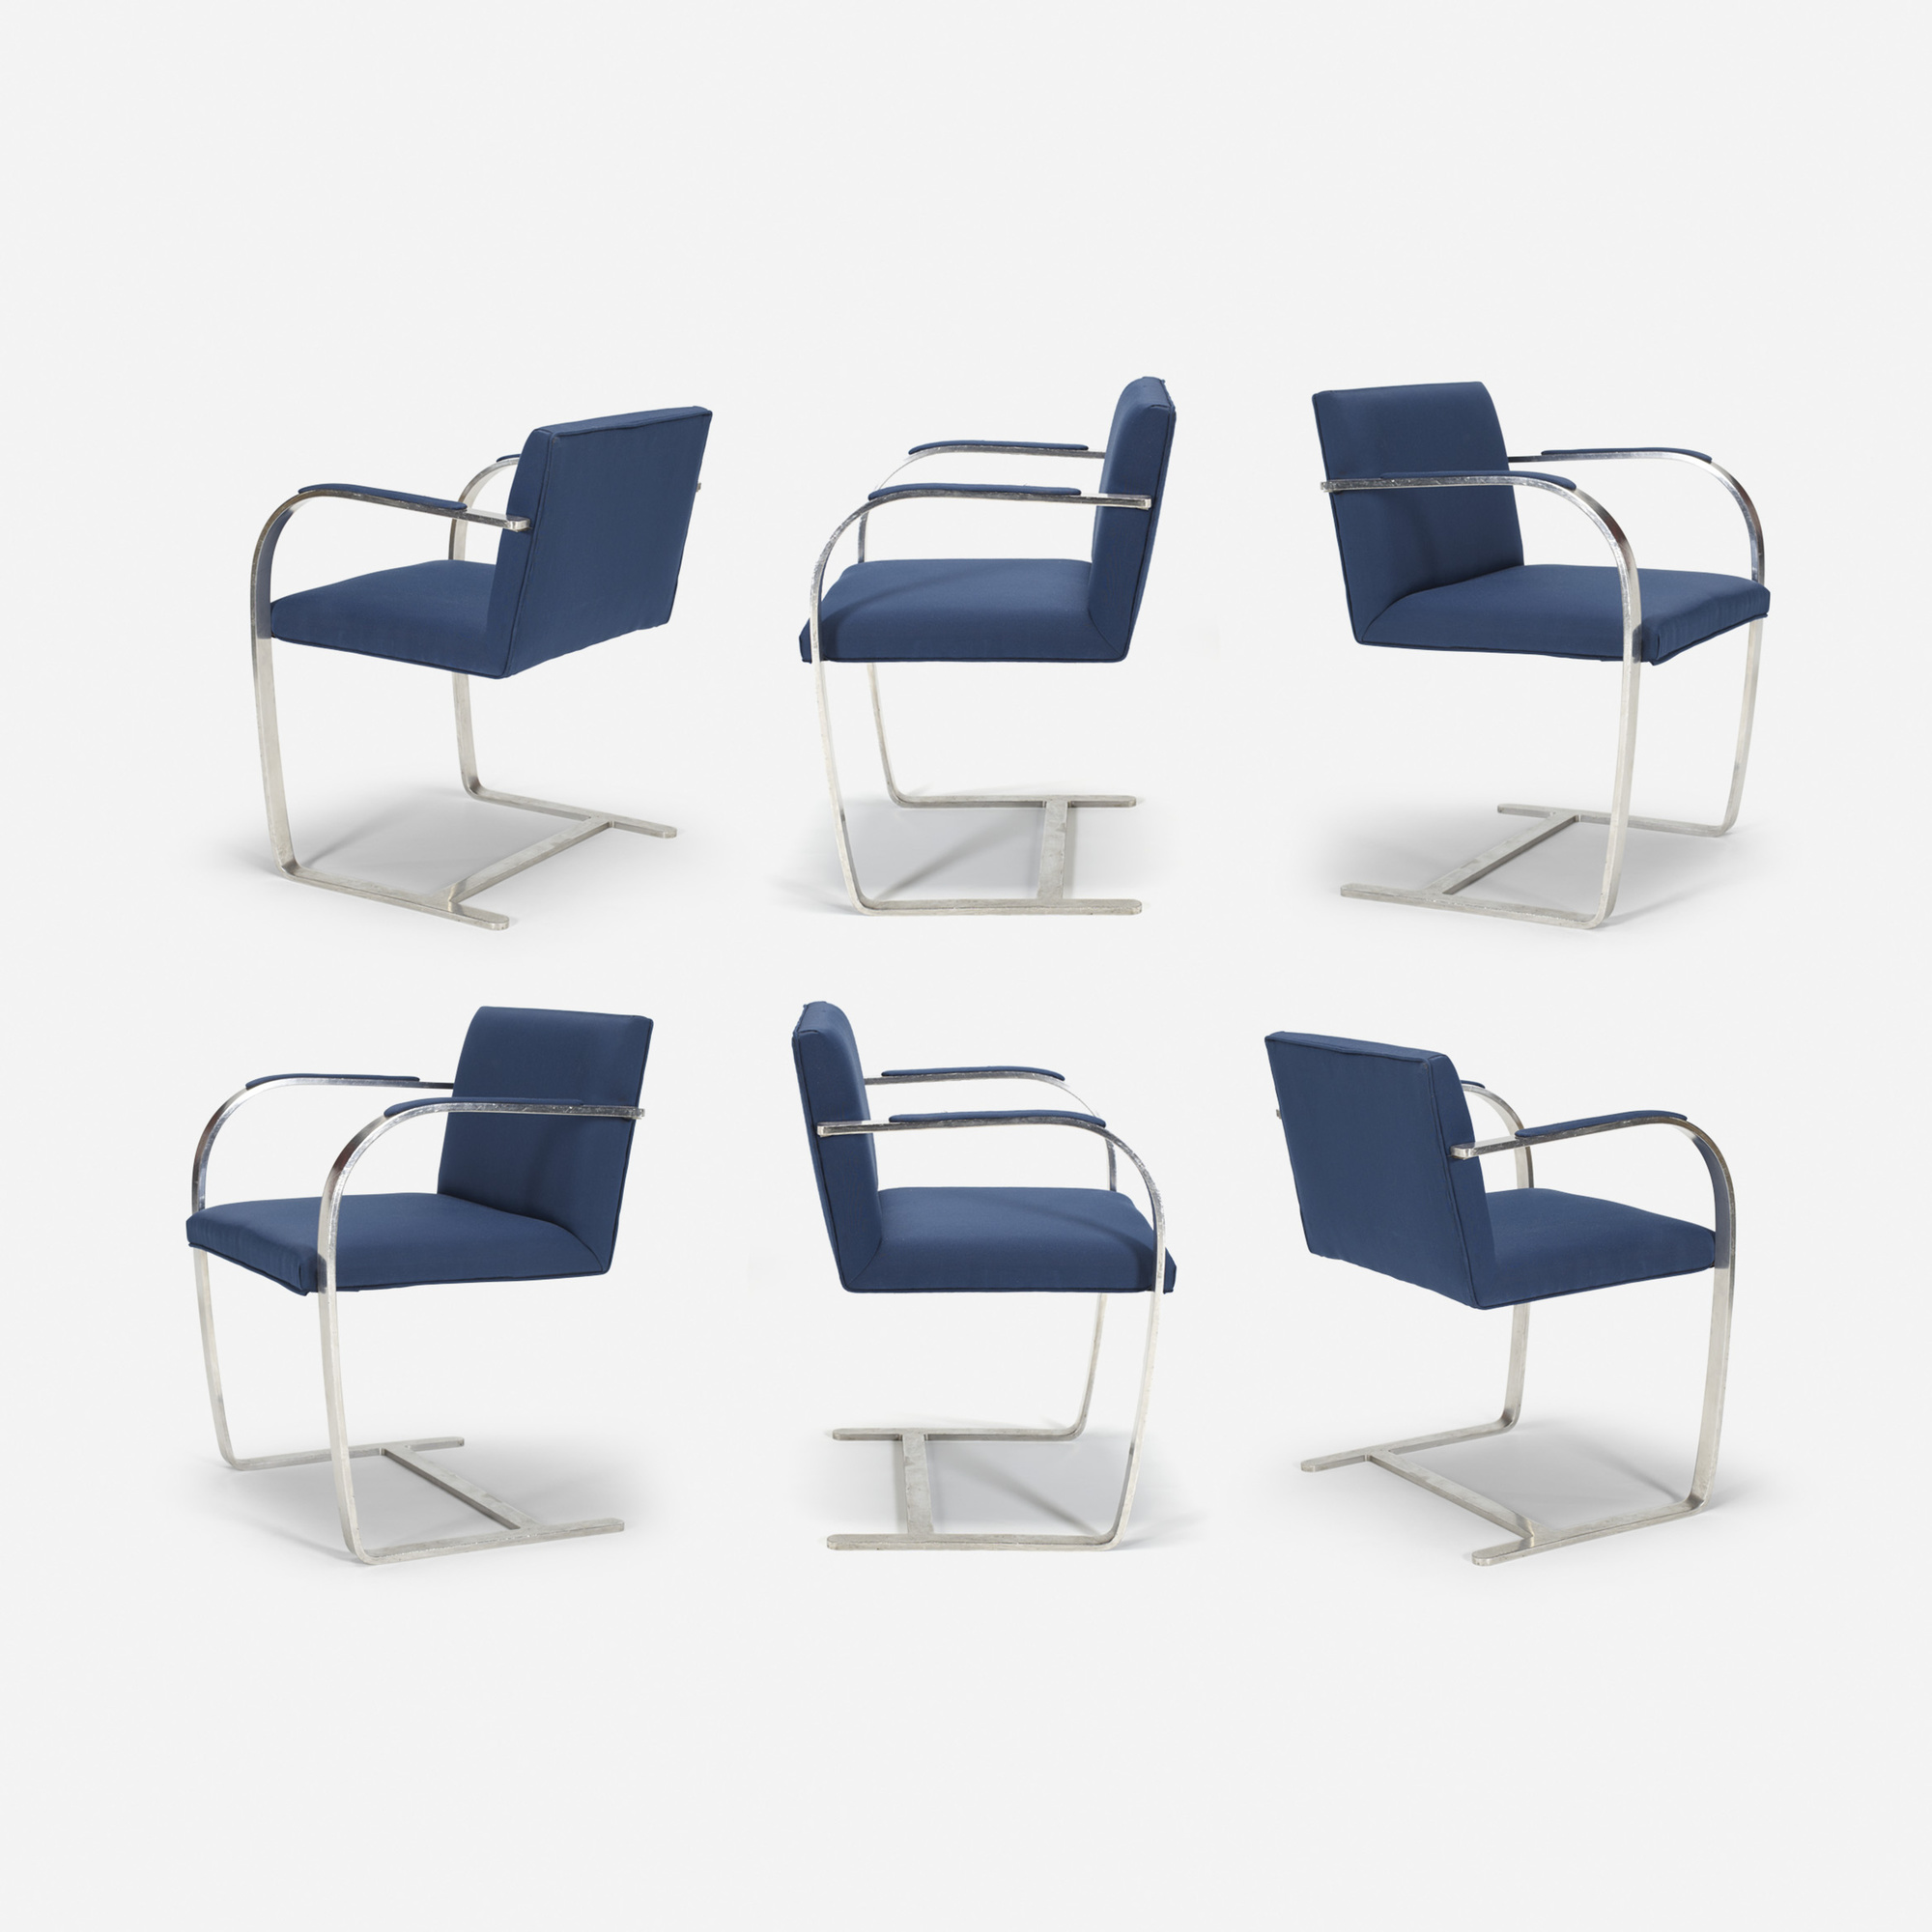 206: Ludwig Mies van der Rohe / Brno chairs from The Four Seasons, set of six (1 of 1)